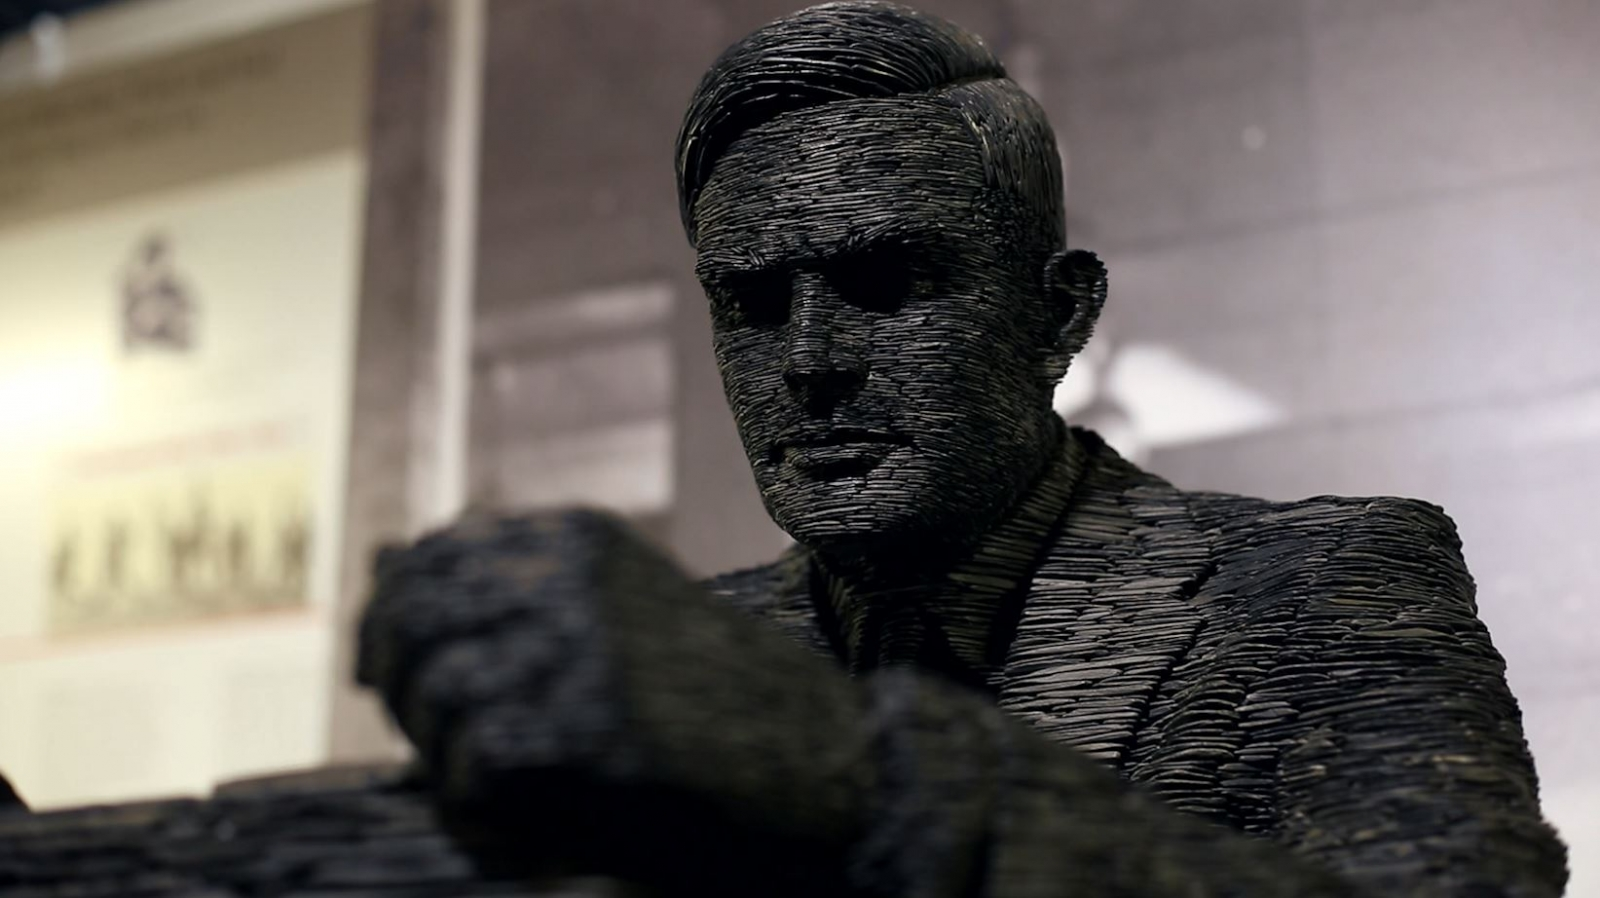 Alan Turing: Cracking the Enigma